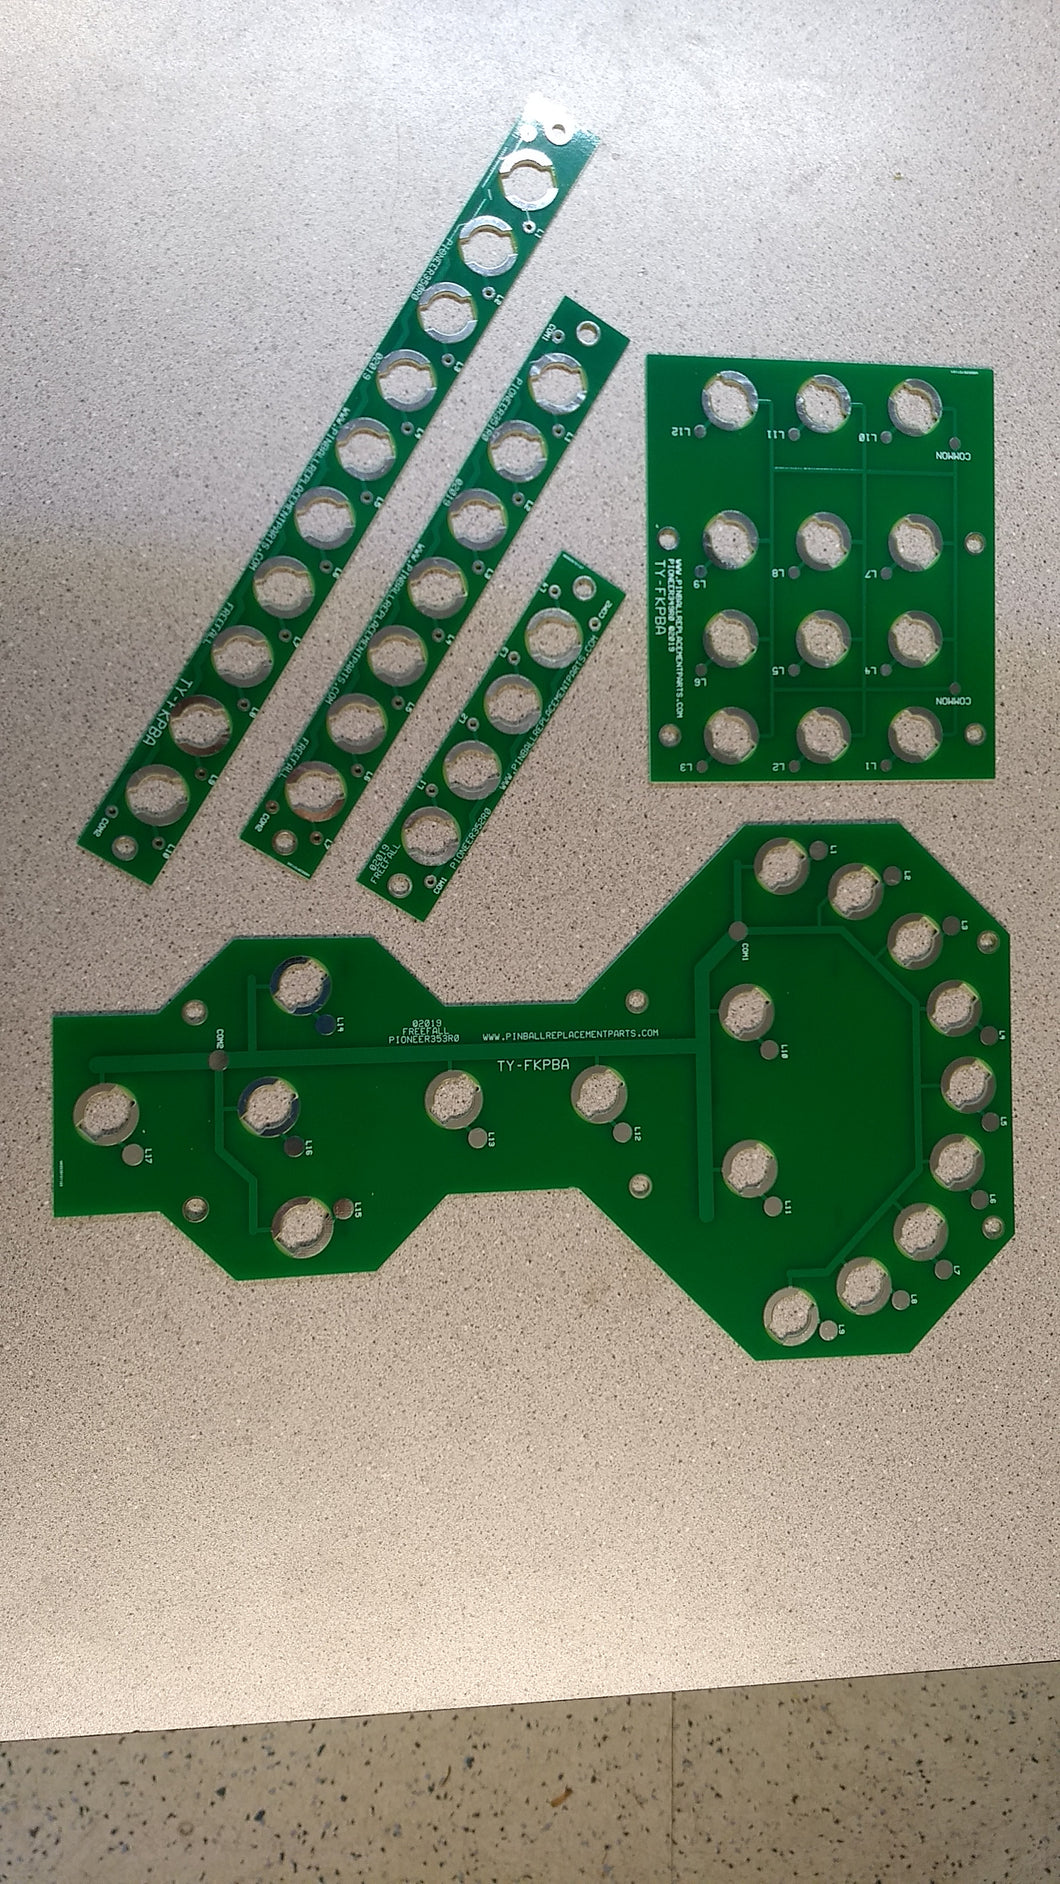 Stern Freefall lamp board set replaces metal strips with 555 sockets